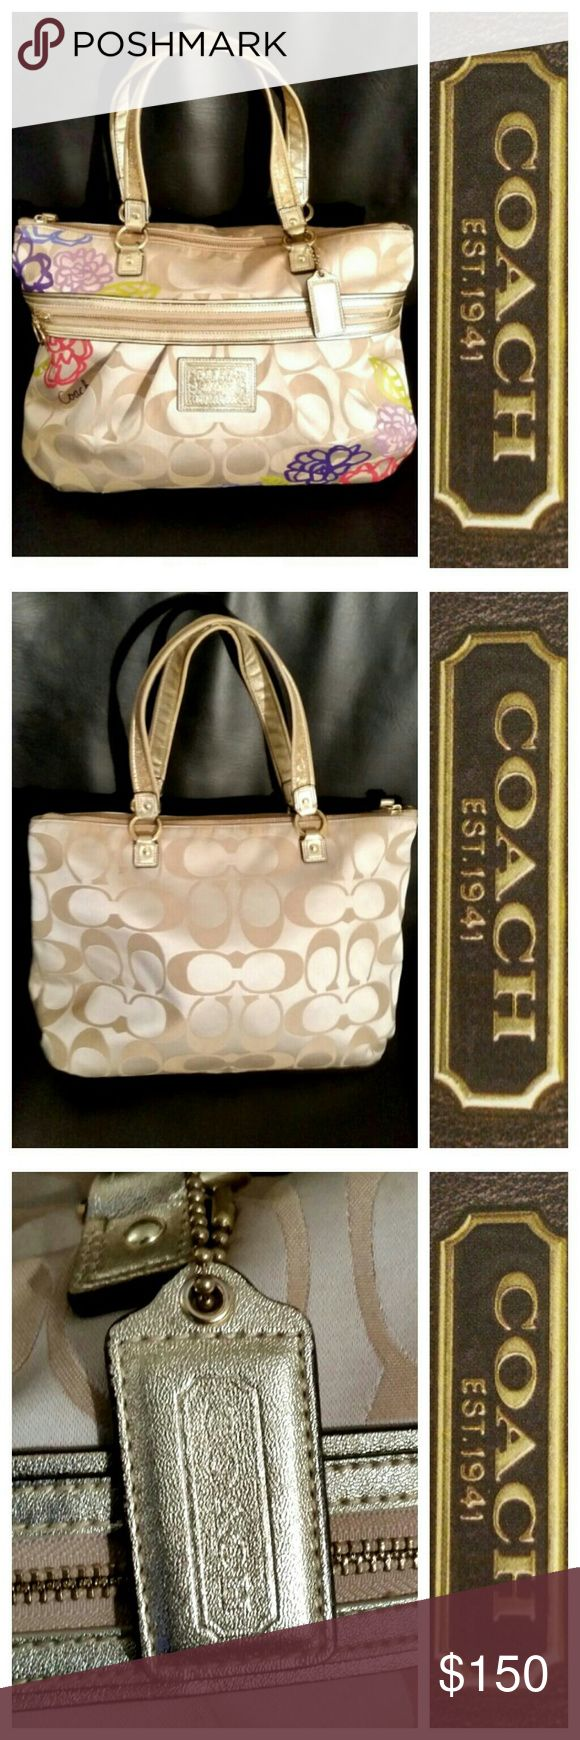 AUTH COACHDAISY APPLIQUE GLAM BAG 🌹SALE!!🌹 Authentic Daisy Applique Glam Coach Tote Bag.  Exterior features beautiful multicolored daisy design. Straps accented in shimmering gold sequence.  Heart shape hardware that is engraved with Coach logo.  The interior features two slip pockets and a zippered pocket.  Preloved in MINT condition.  OFFERS WELCOME!✔ Coach Bags Totes